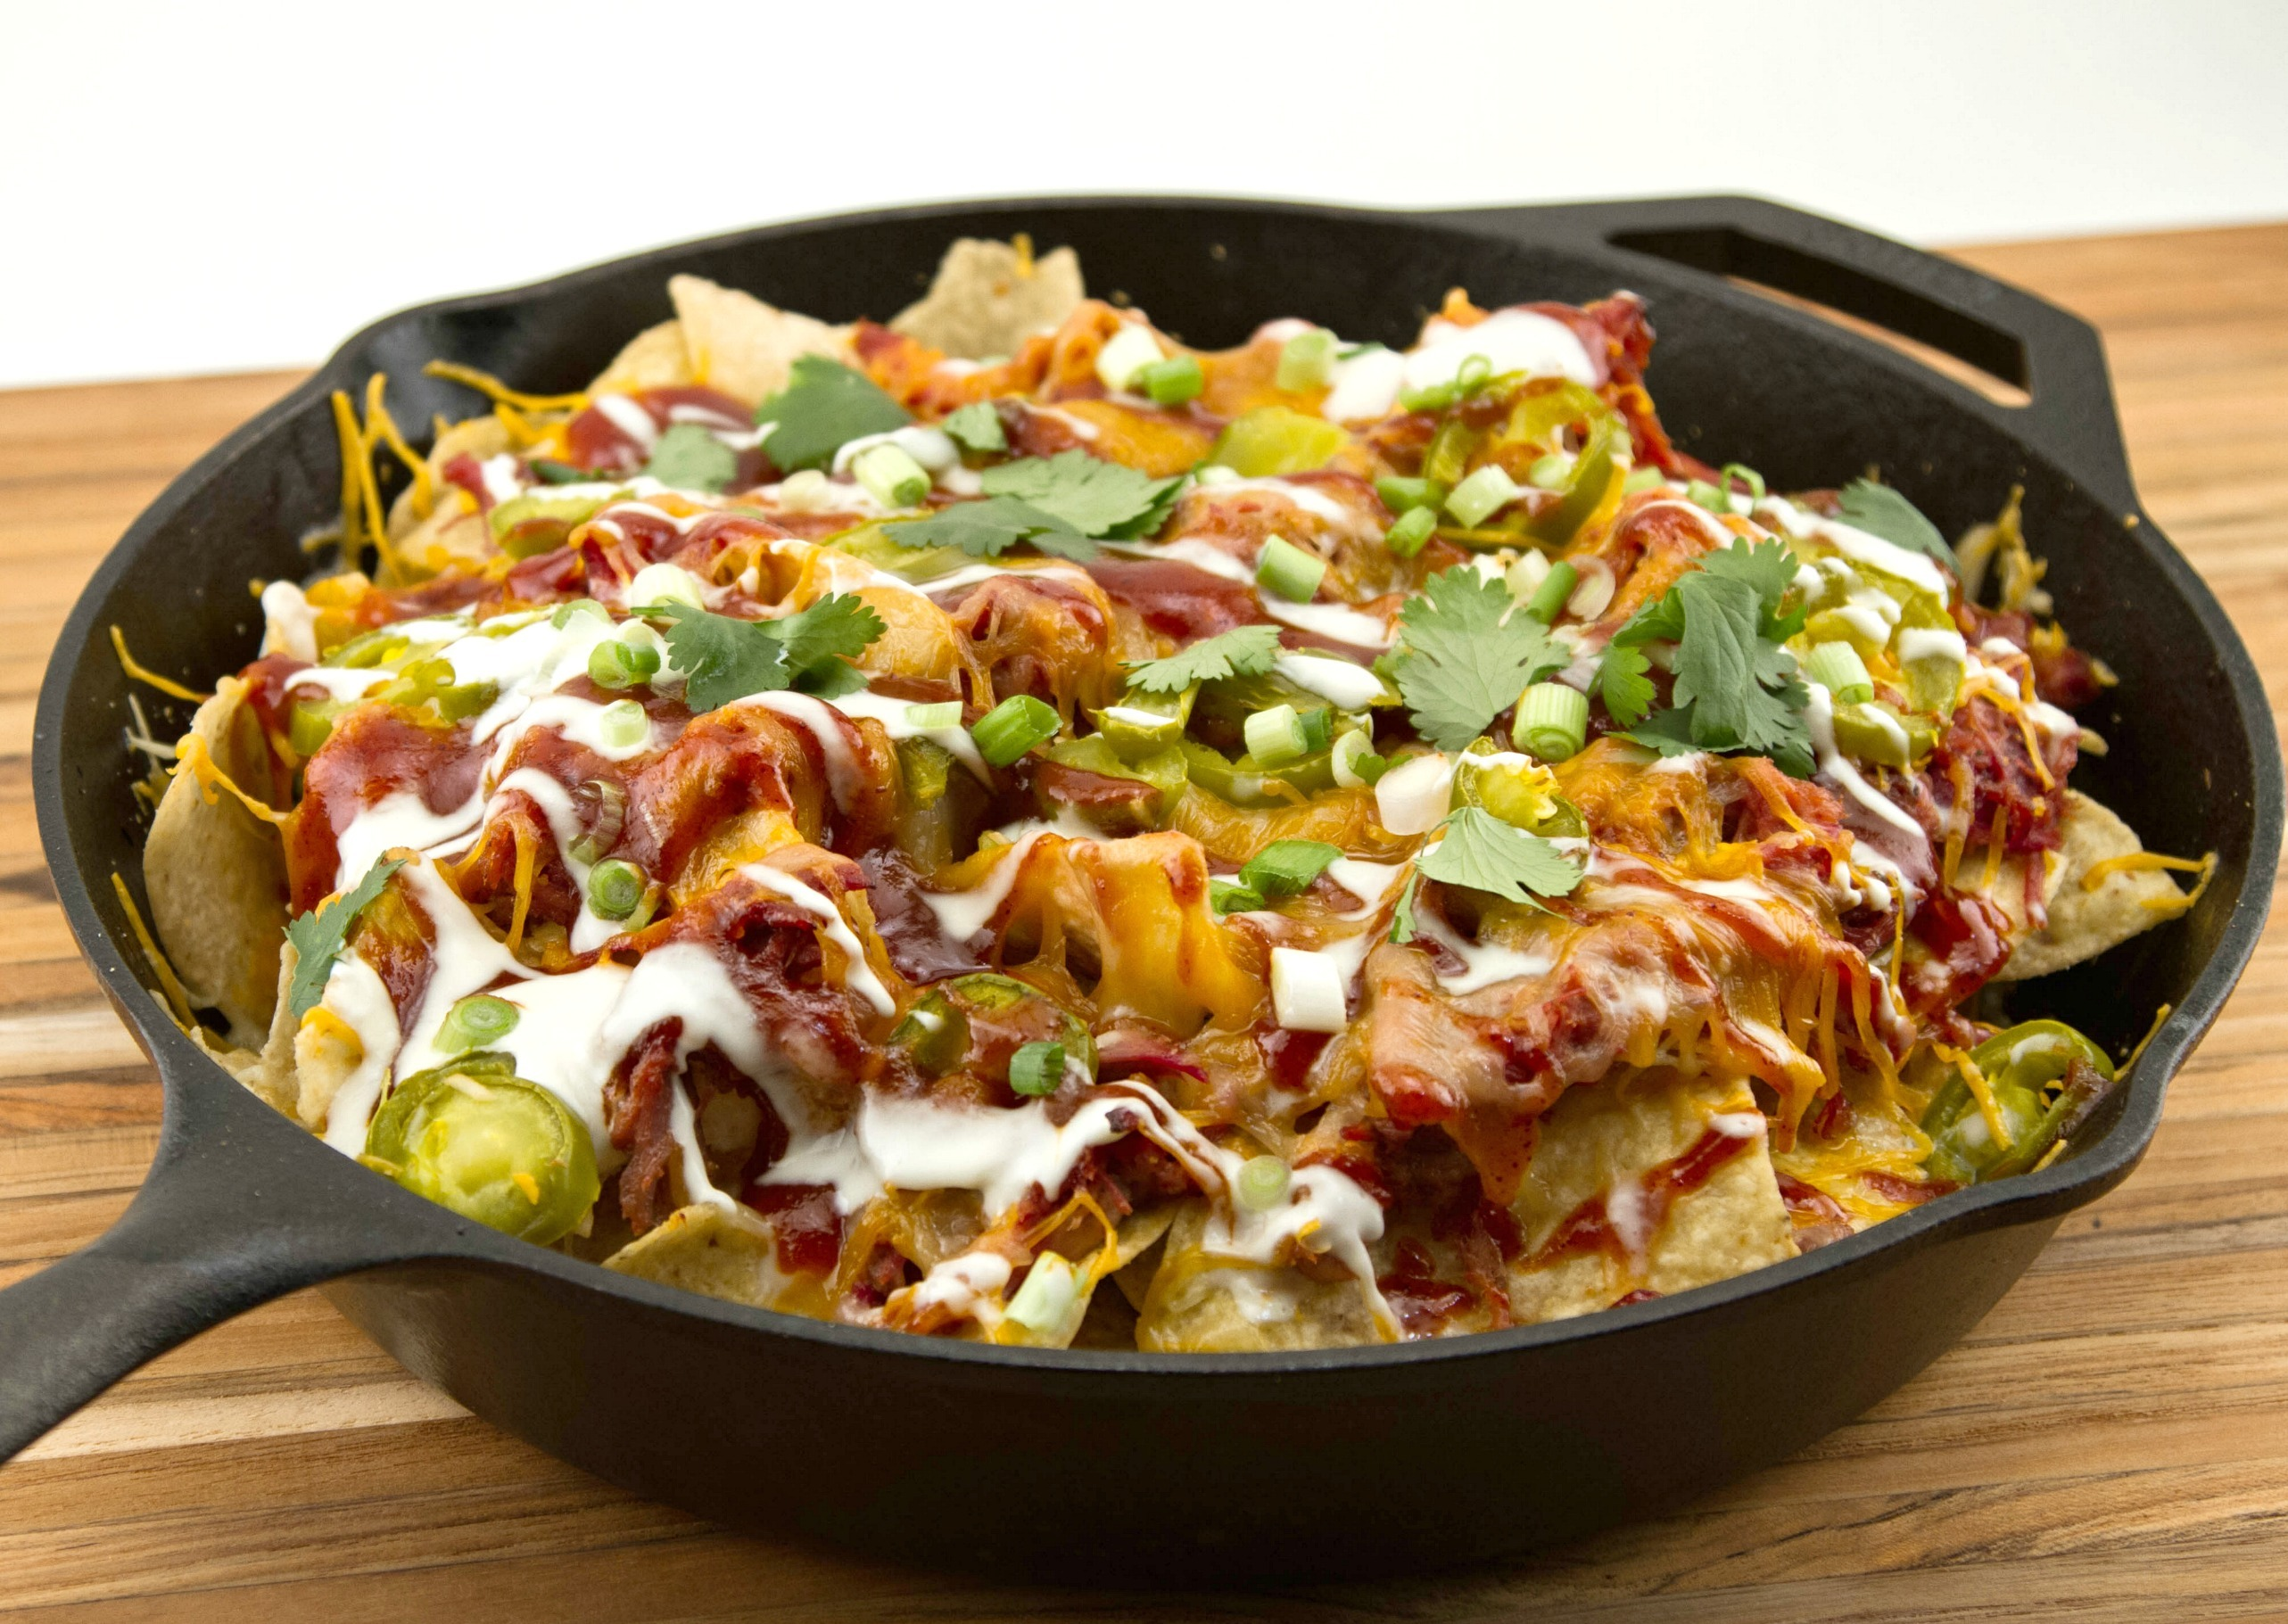 Smoked Pulled Pork: Game Day Loaded Nachos